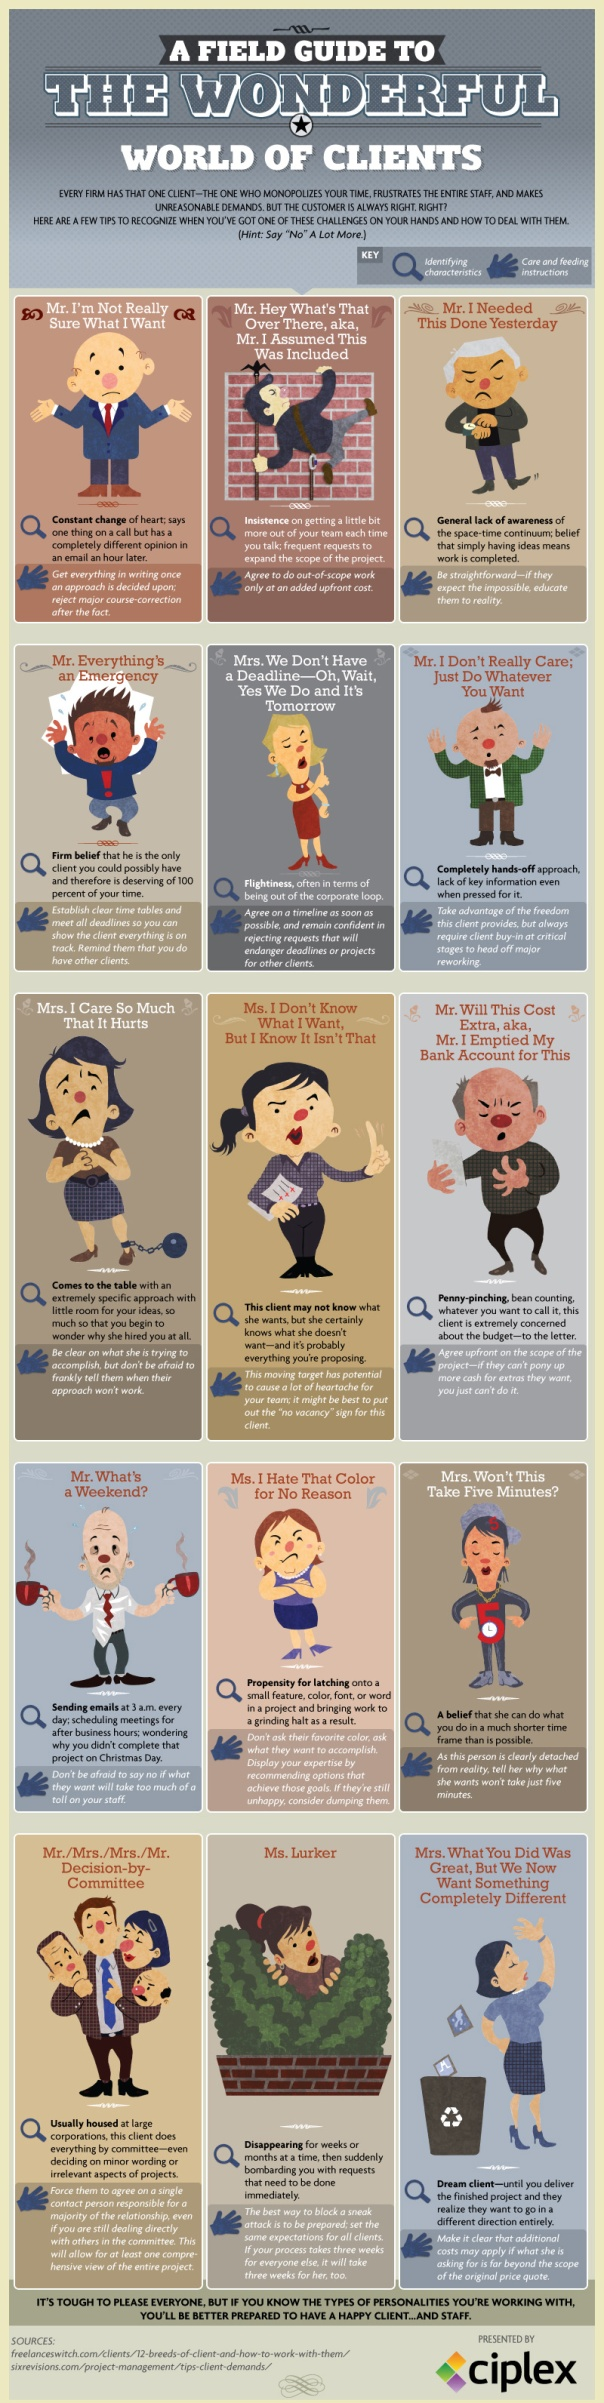 The Wonderful World of Difficult Clients [Infographic]